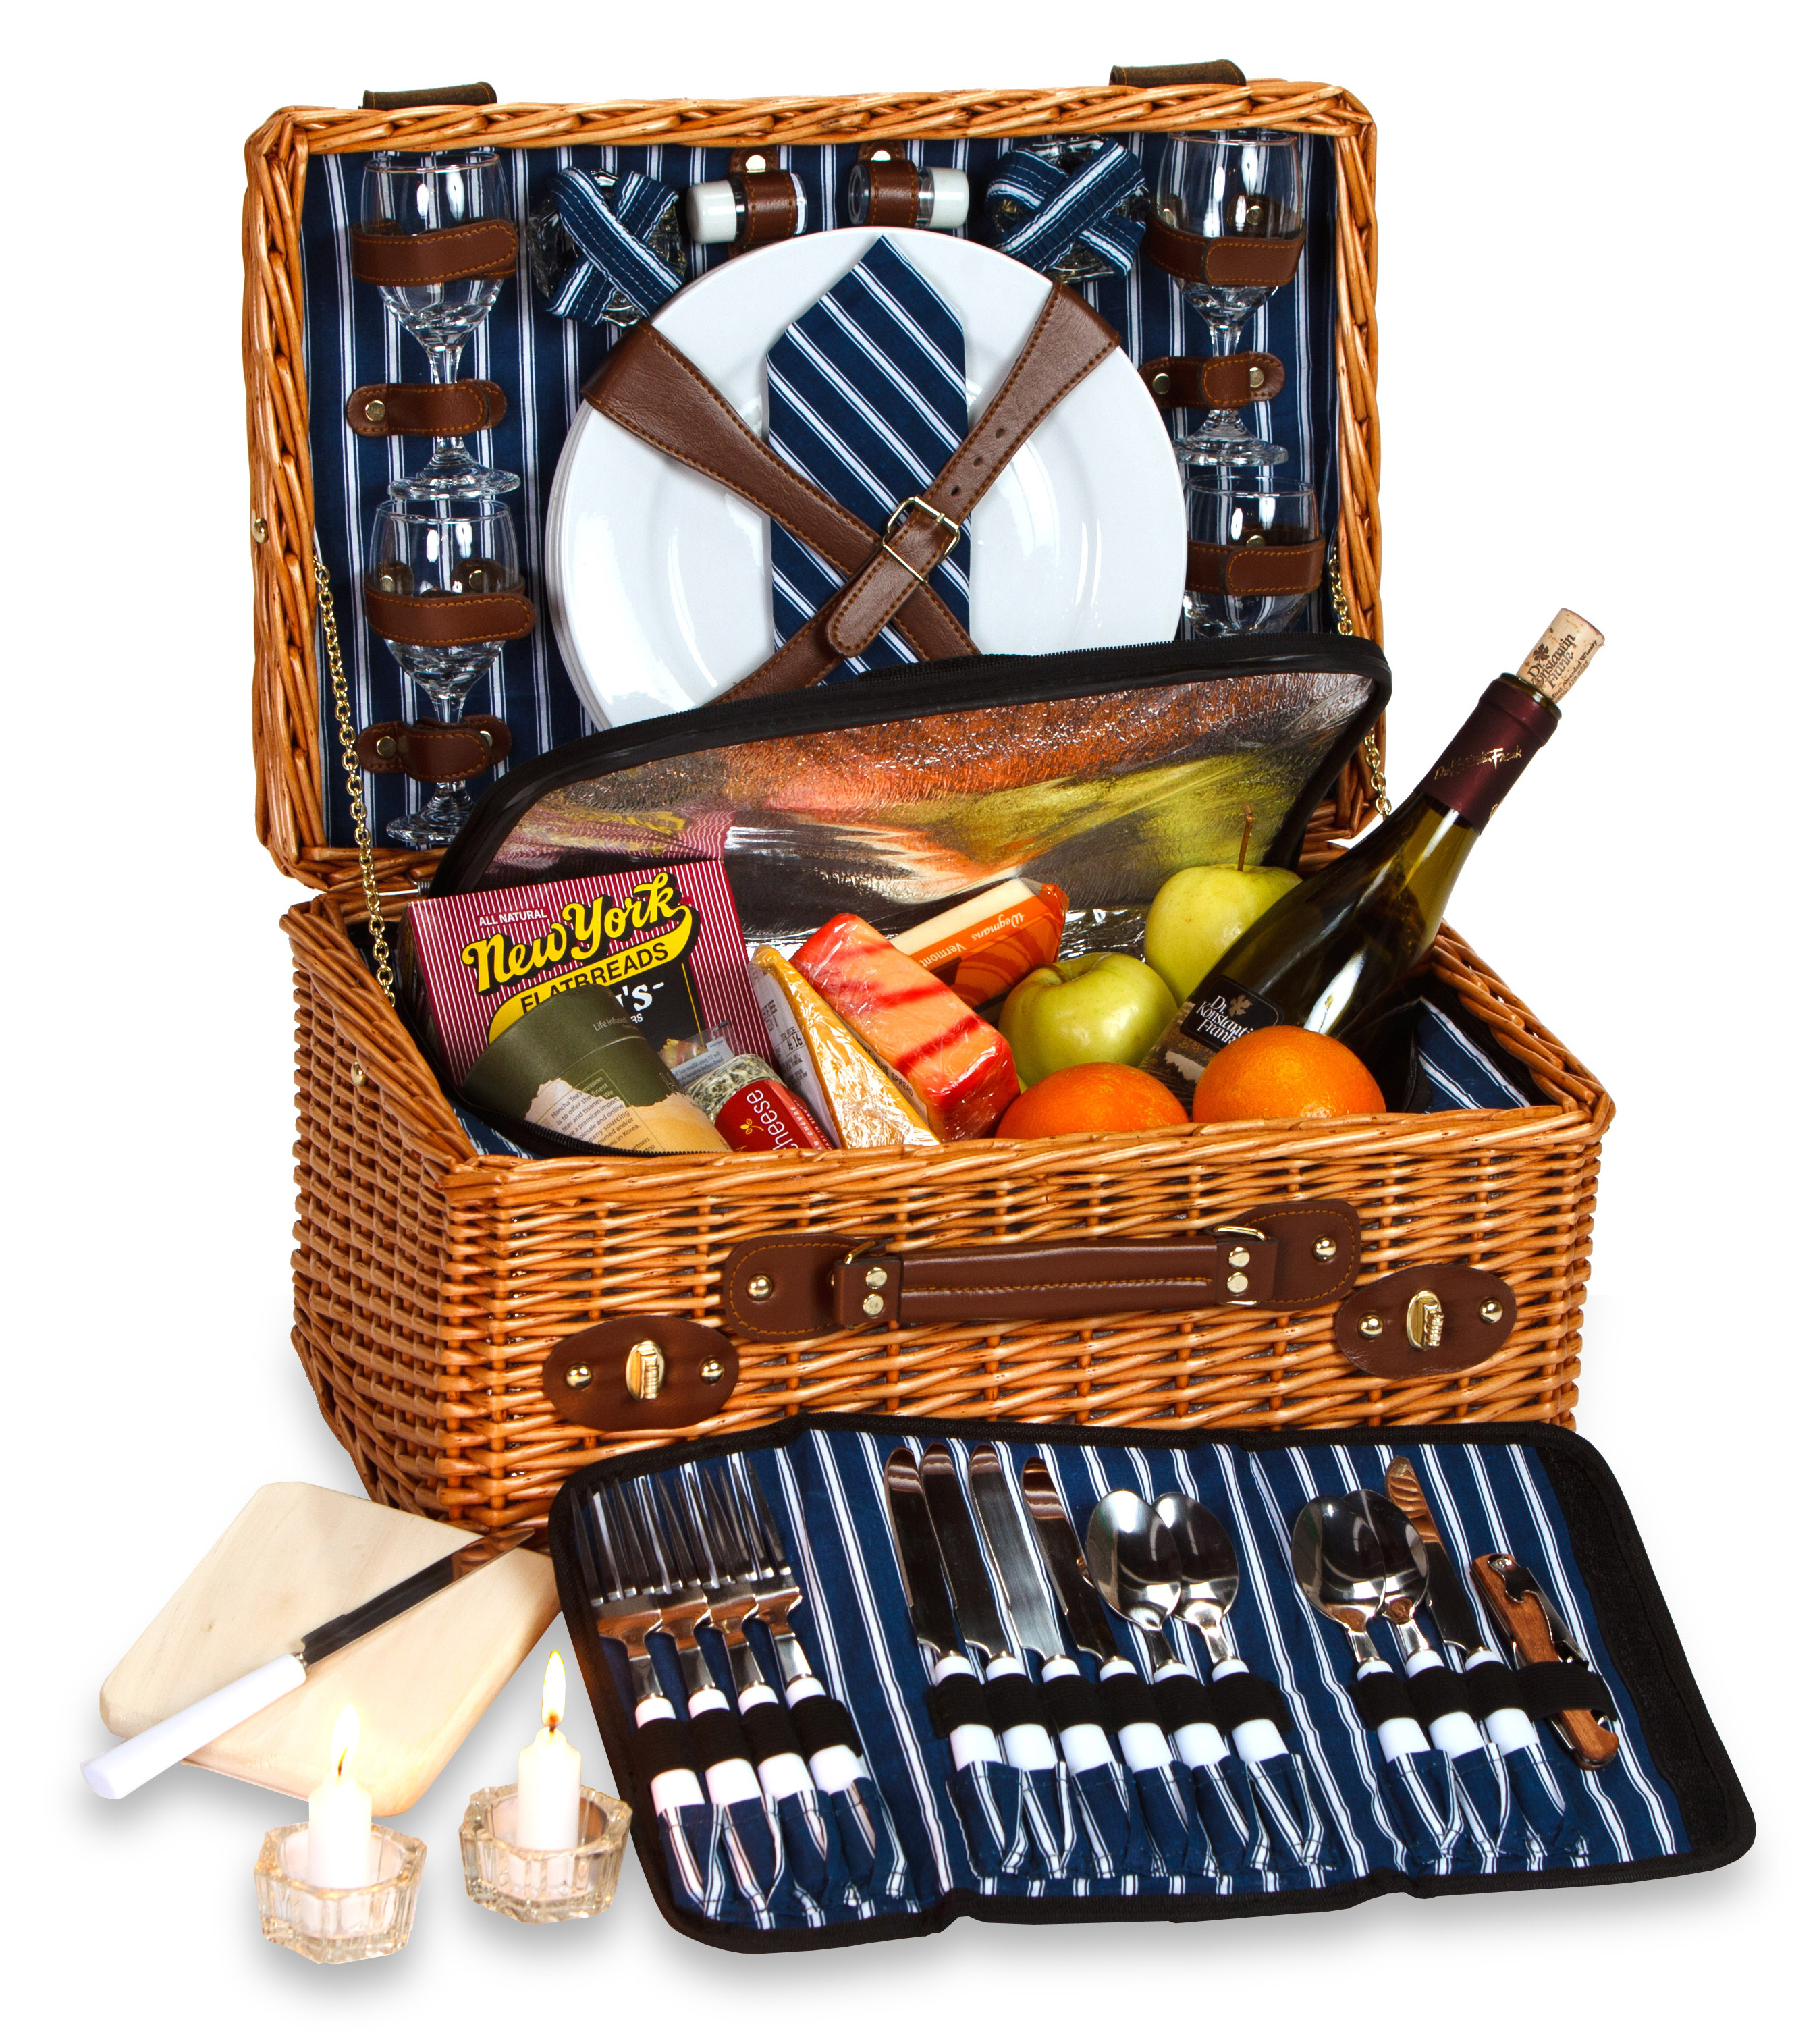 Picnic Baskets As Gift Unique Gift Ideas Picnic World